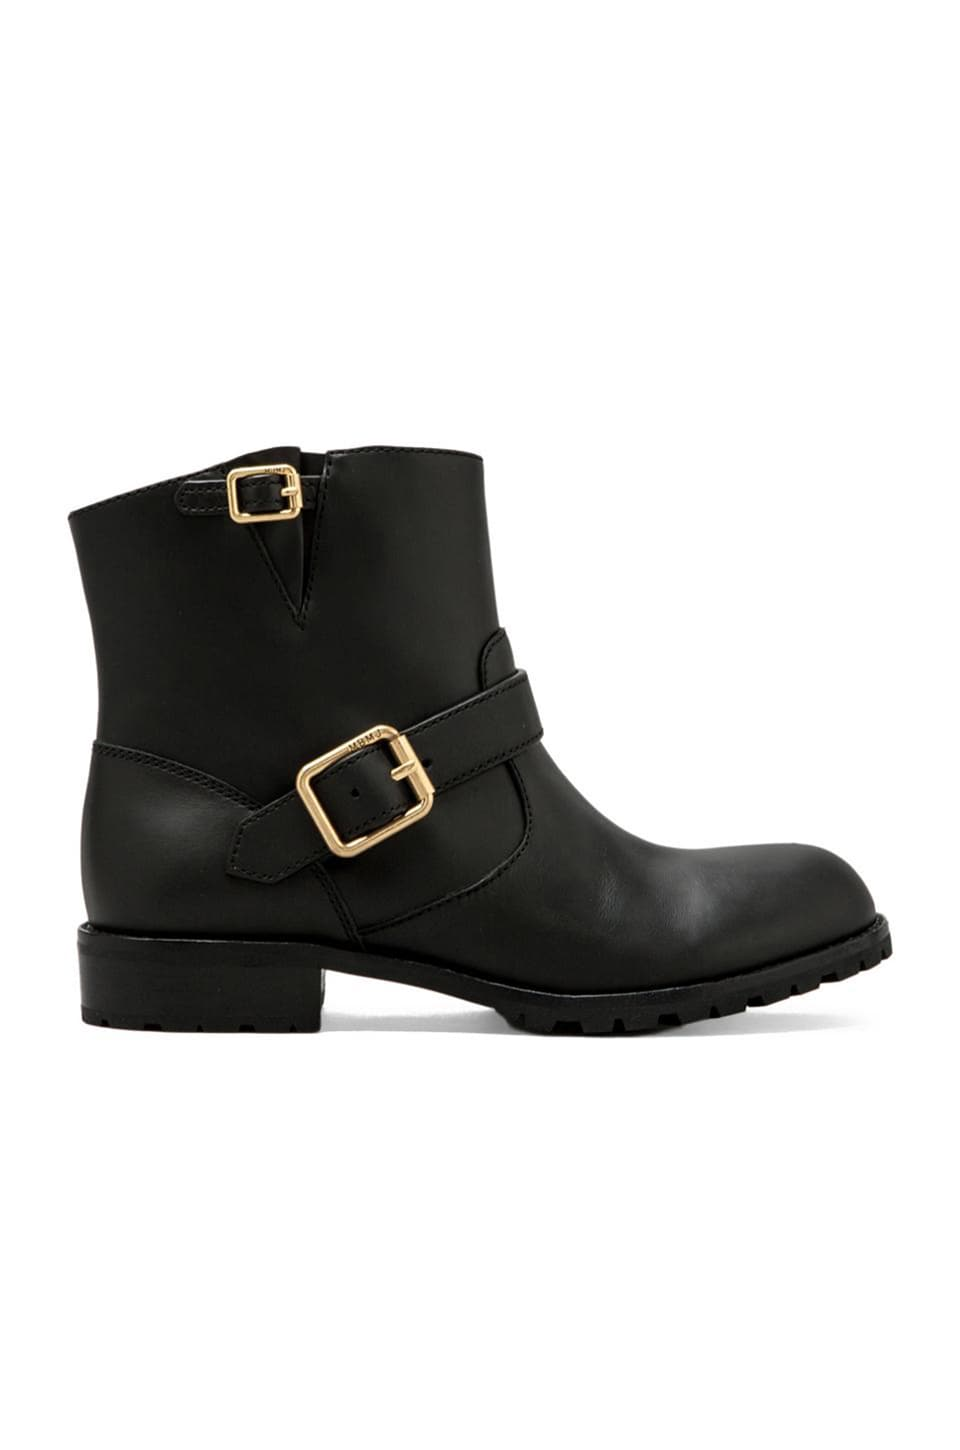 Marc by Marc Jacobs MBMJ Classics Heavy Calf Moto Boot in Black